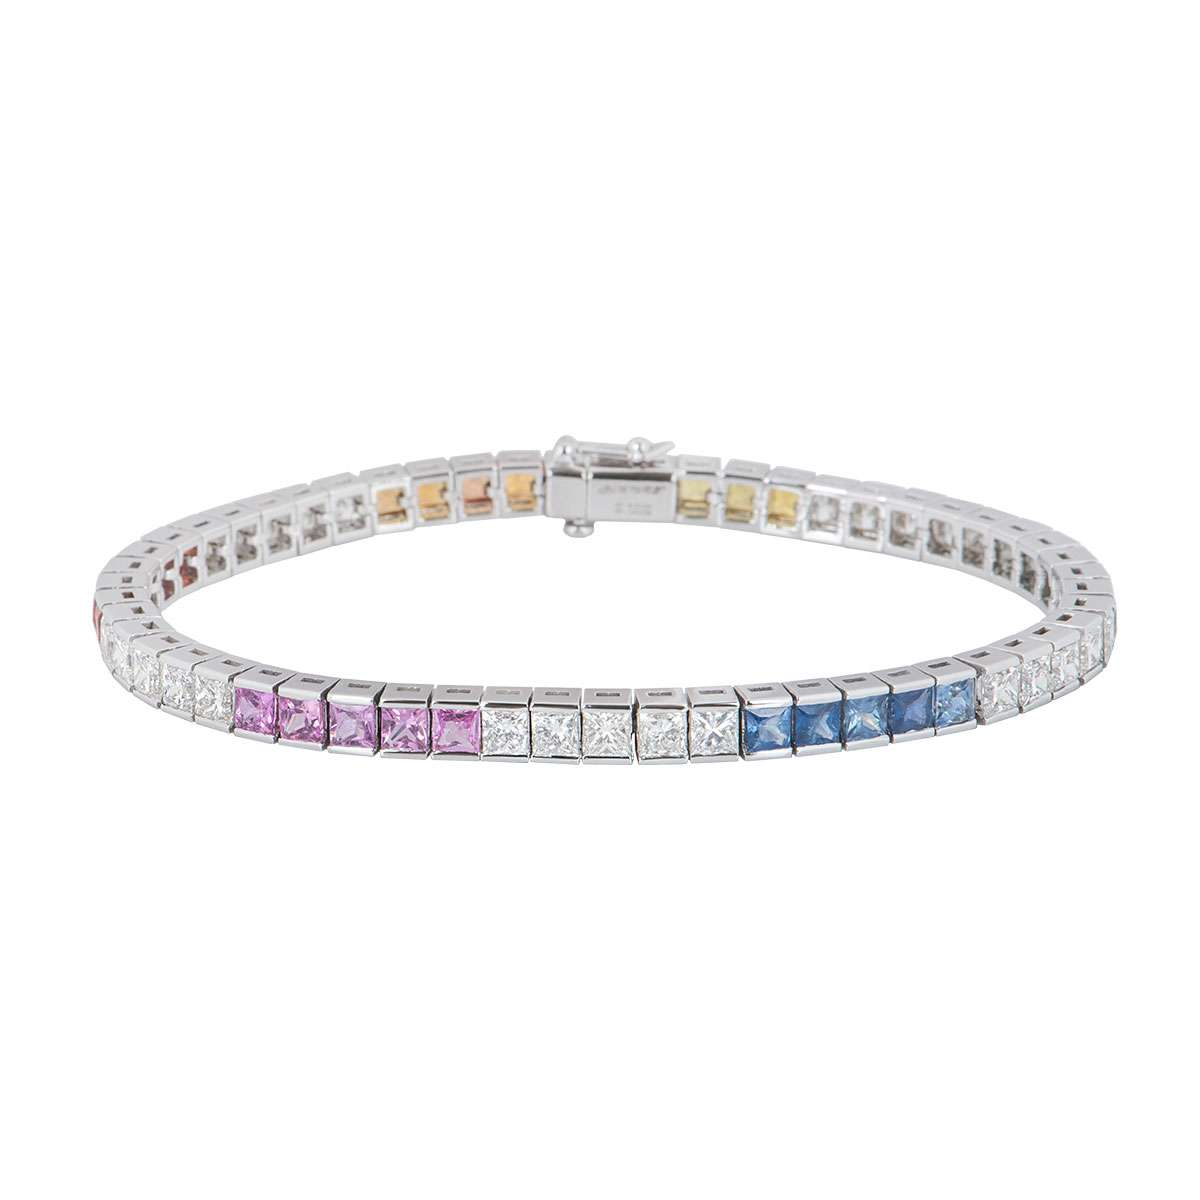 White Gold Diamond And Colour Stone Line Bracelet